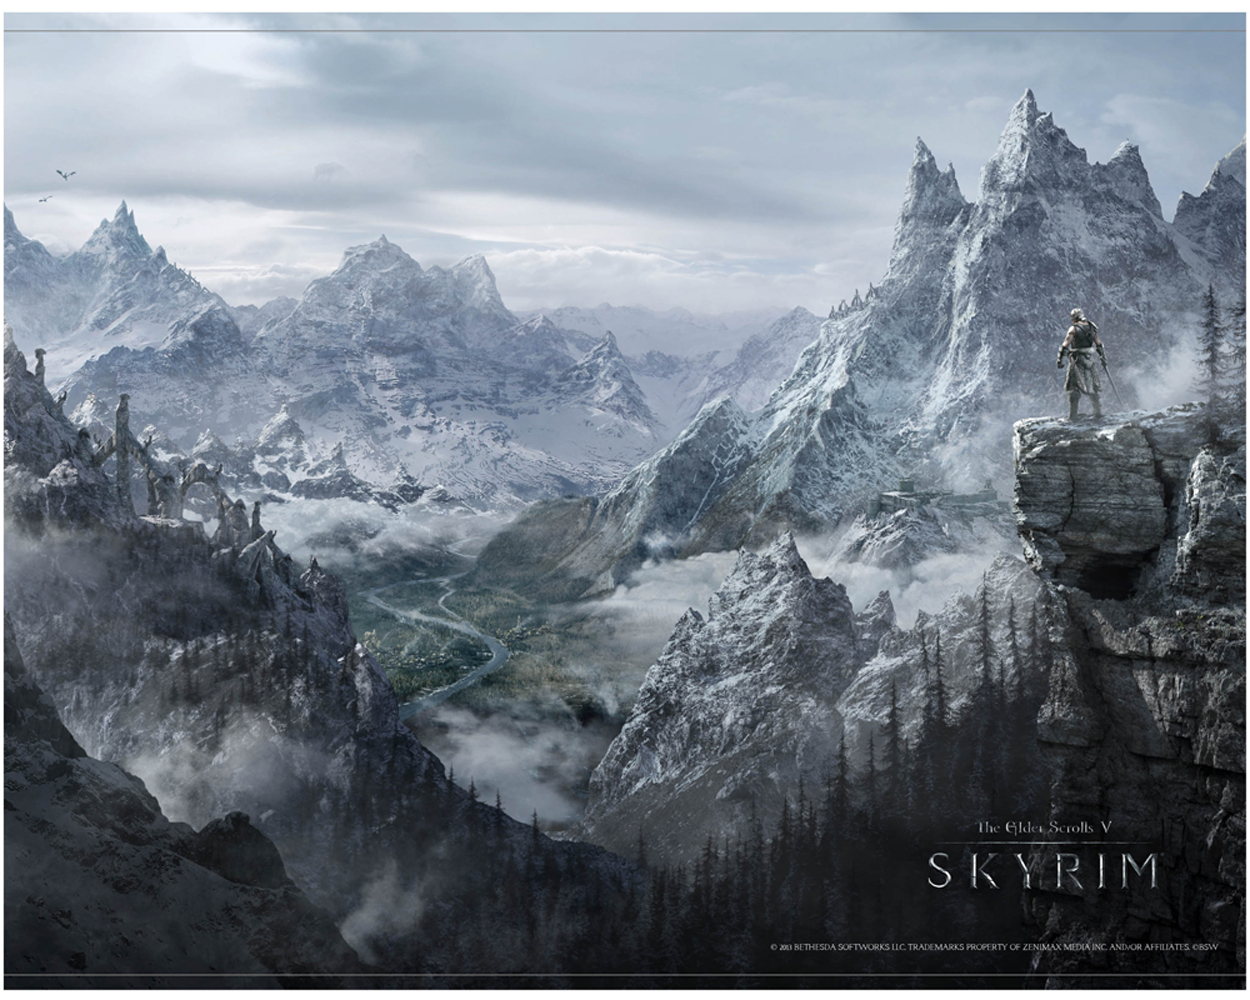 The Elder Scrolls V Skyrim Wallscroll Valley 100 x 77 cm